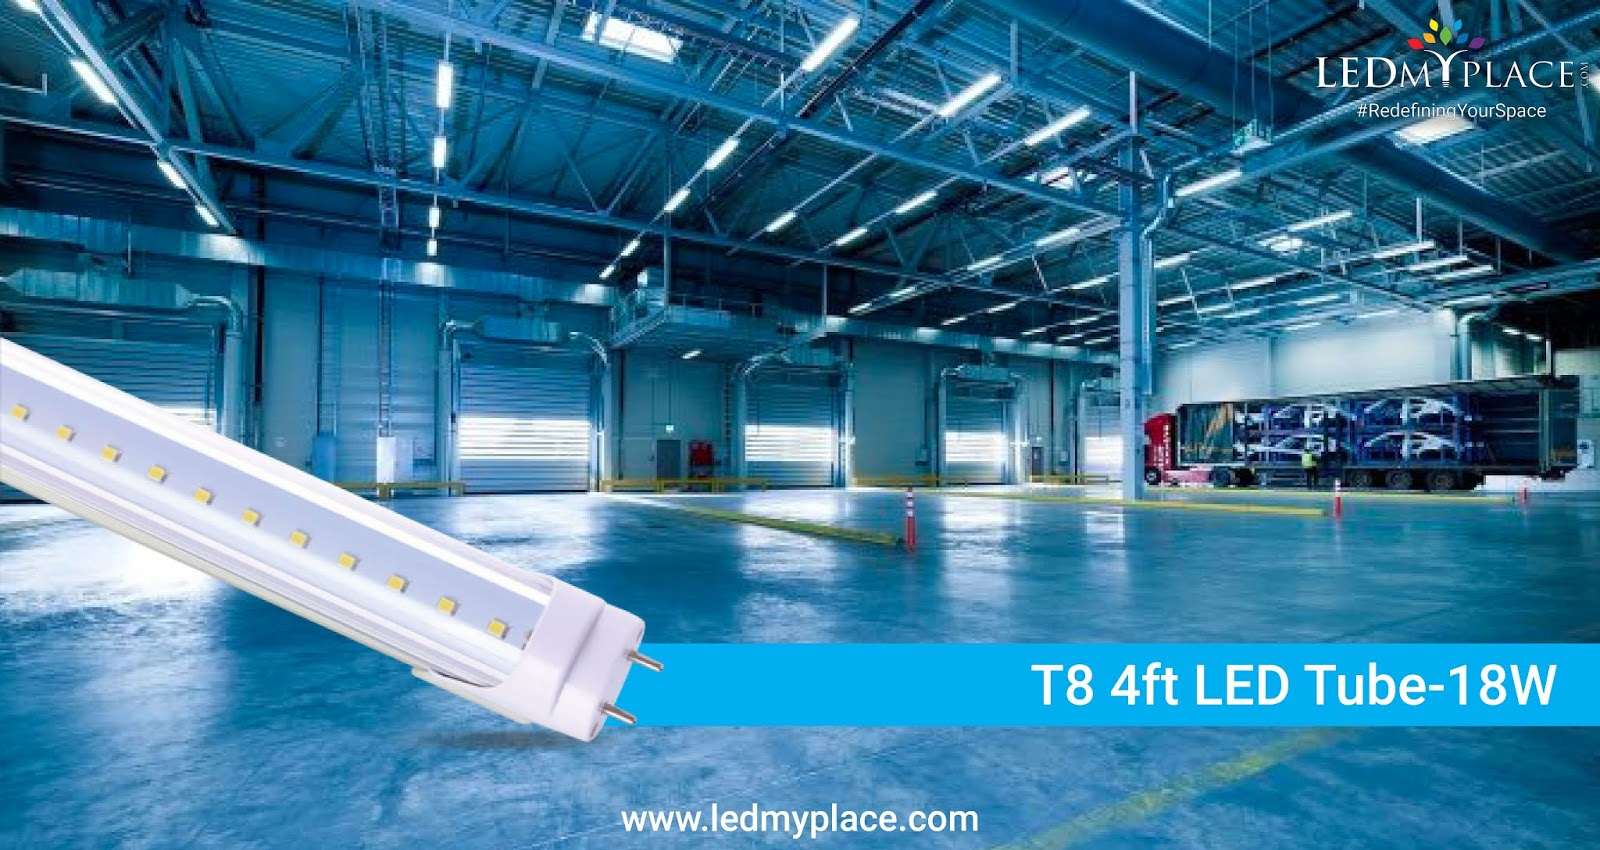 Exterior Led Tube Lights T8 4ft Led Tube A Quick Easy Replacement For T8 4ft Fluorescent